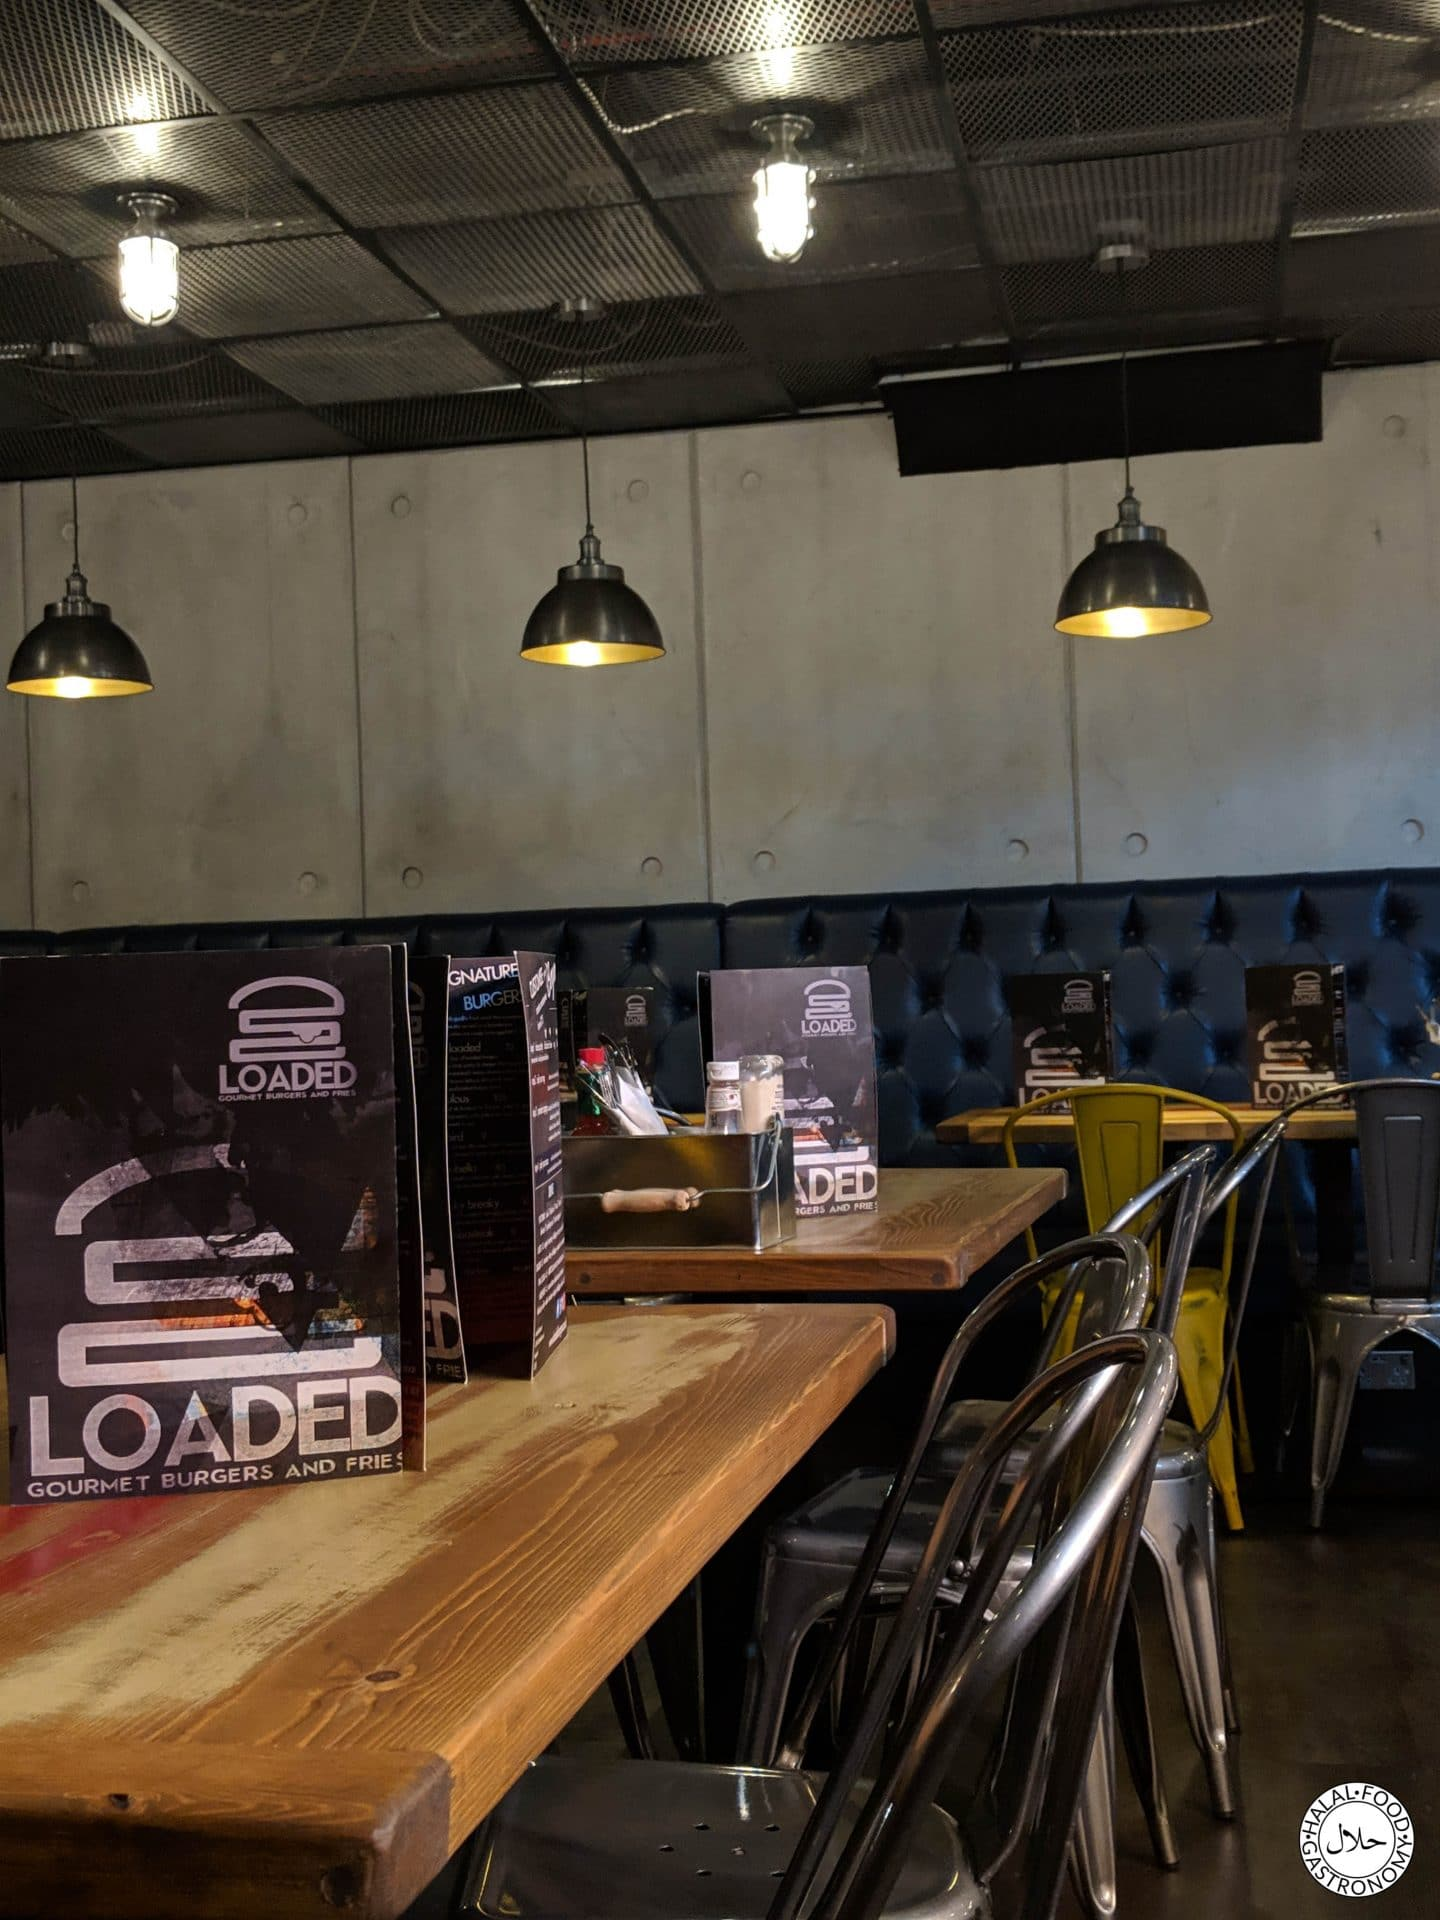 Loaded Gourmet Burgers And Fries Liverpool Halal Food